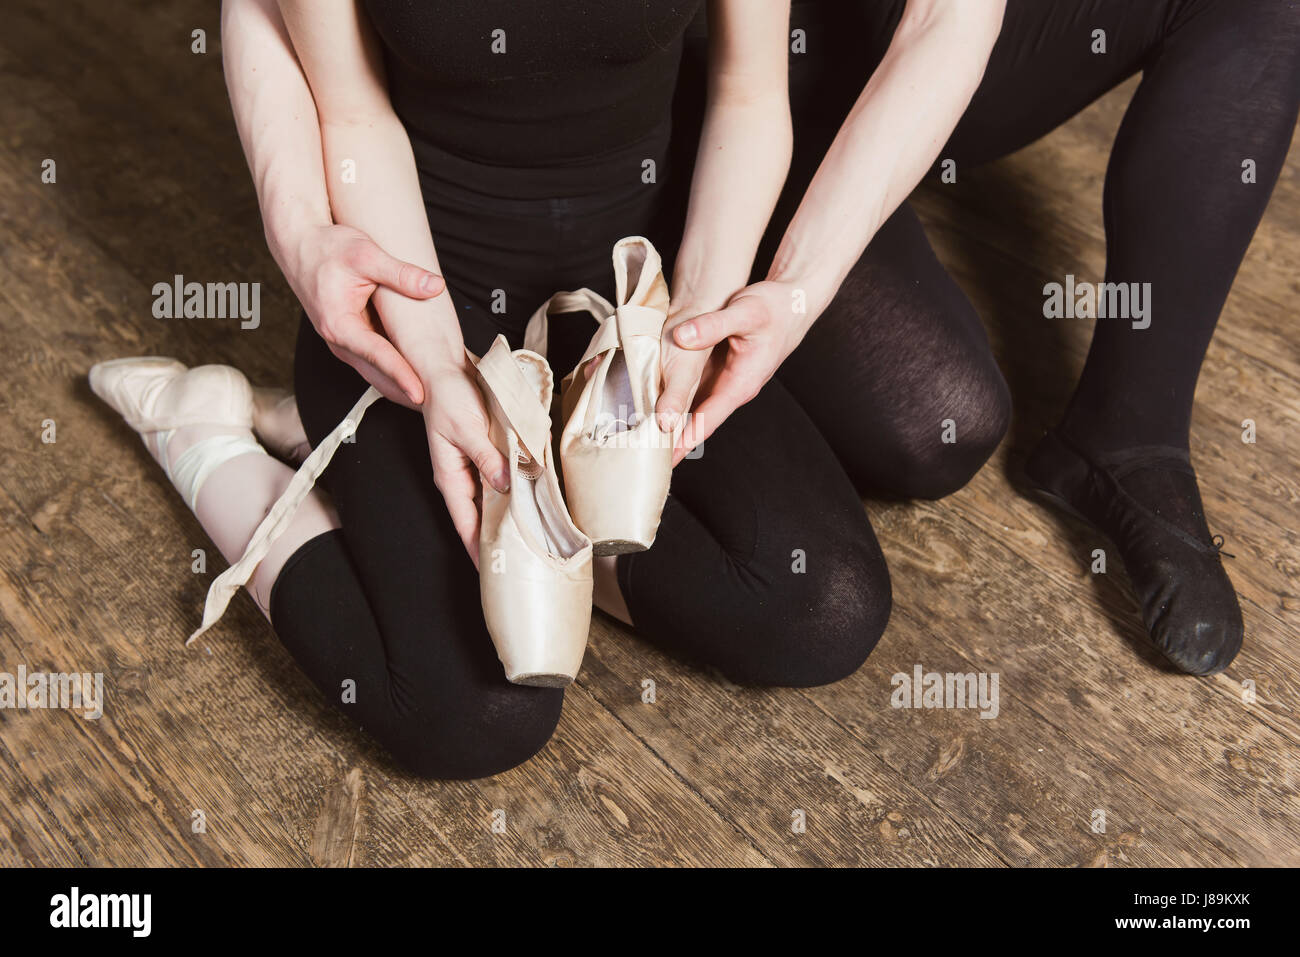 Ballerina and male ballet dancer holding ballet shoes in hands. Top view photo. Horizontal. close-up. - Stock Image